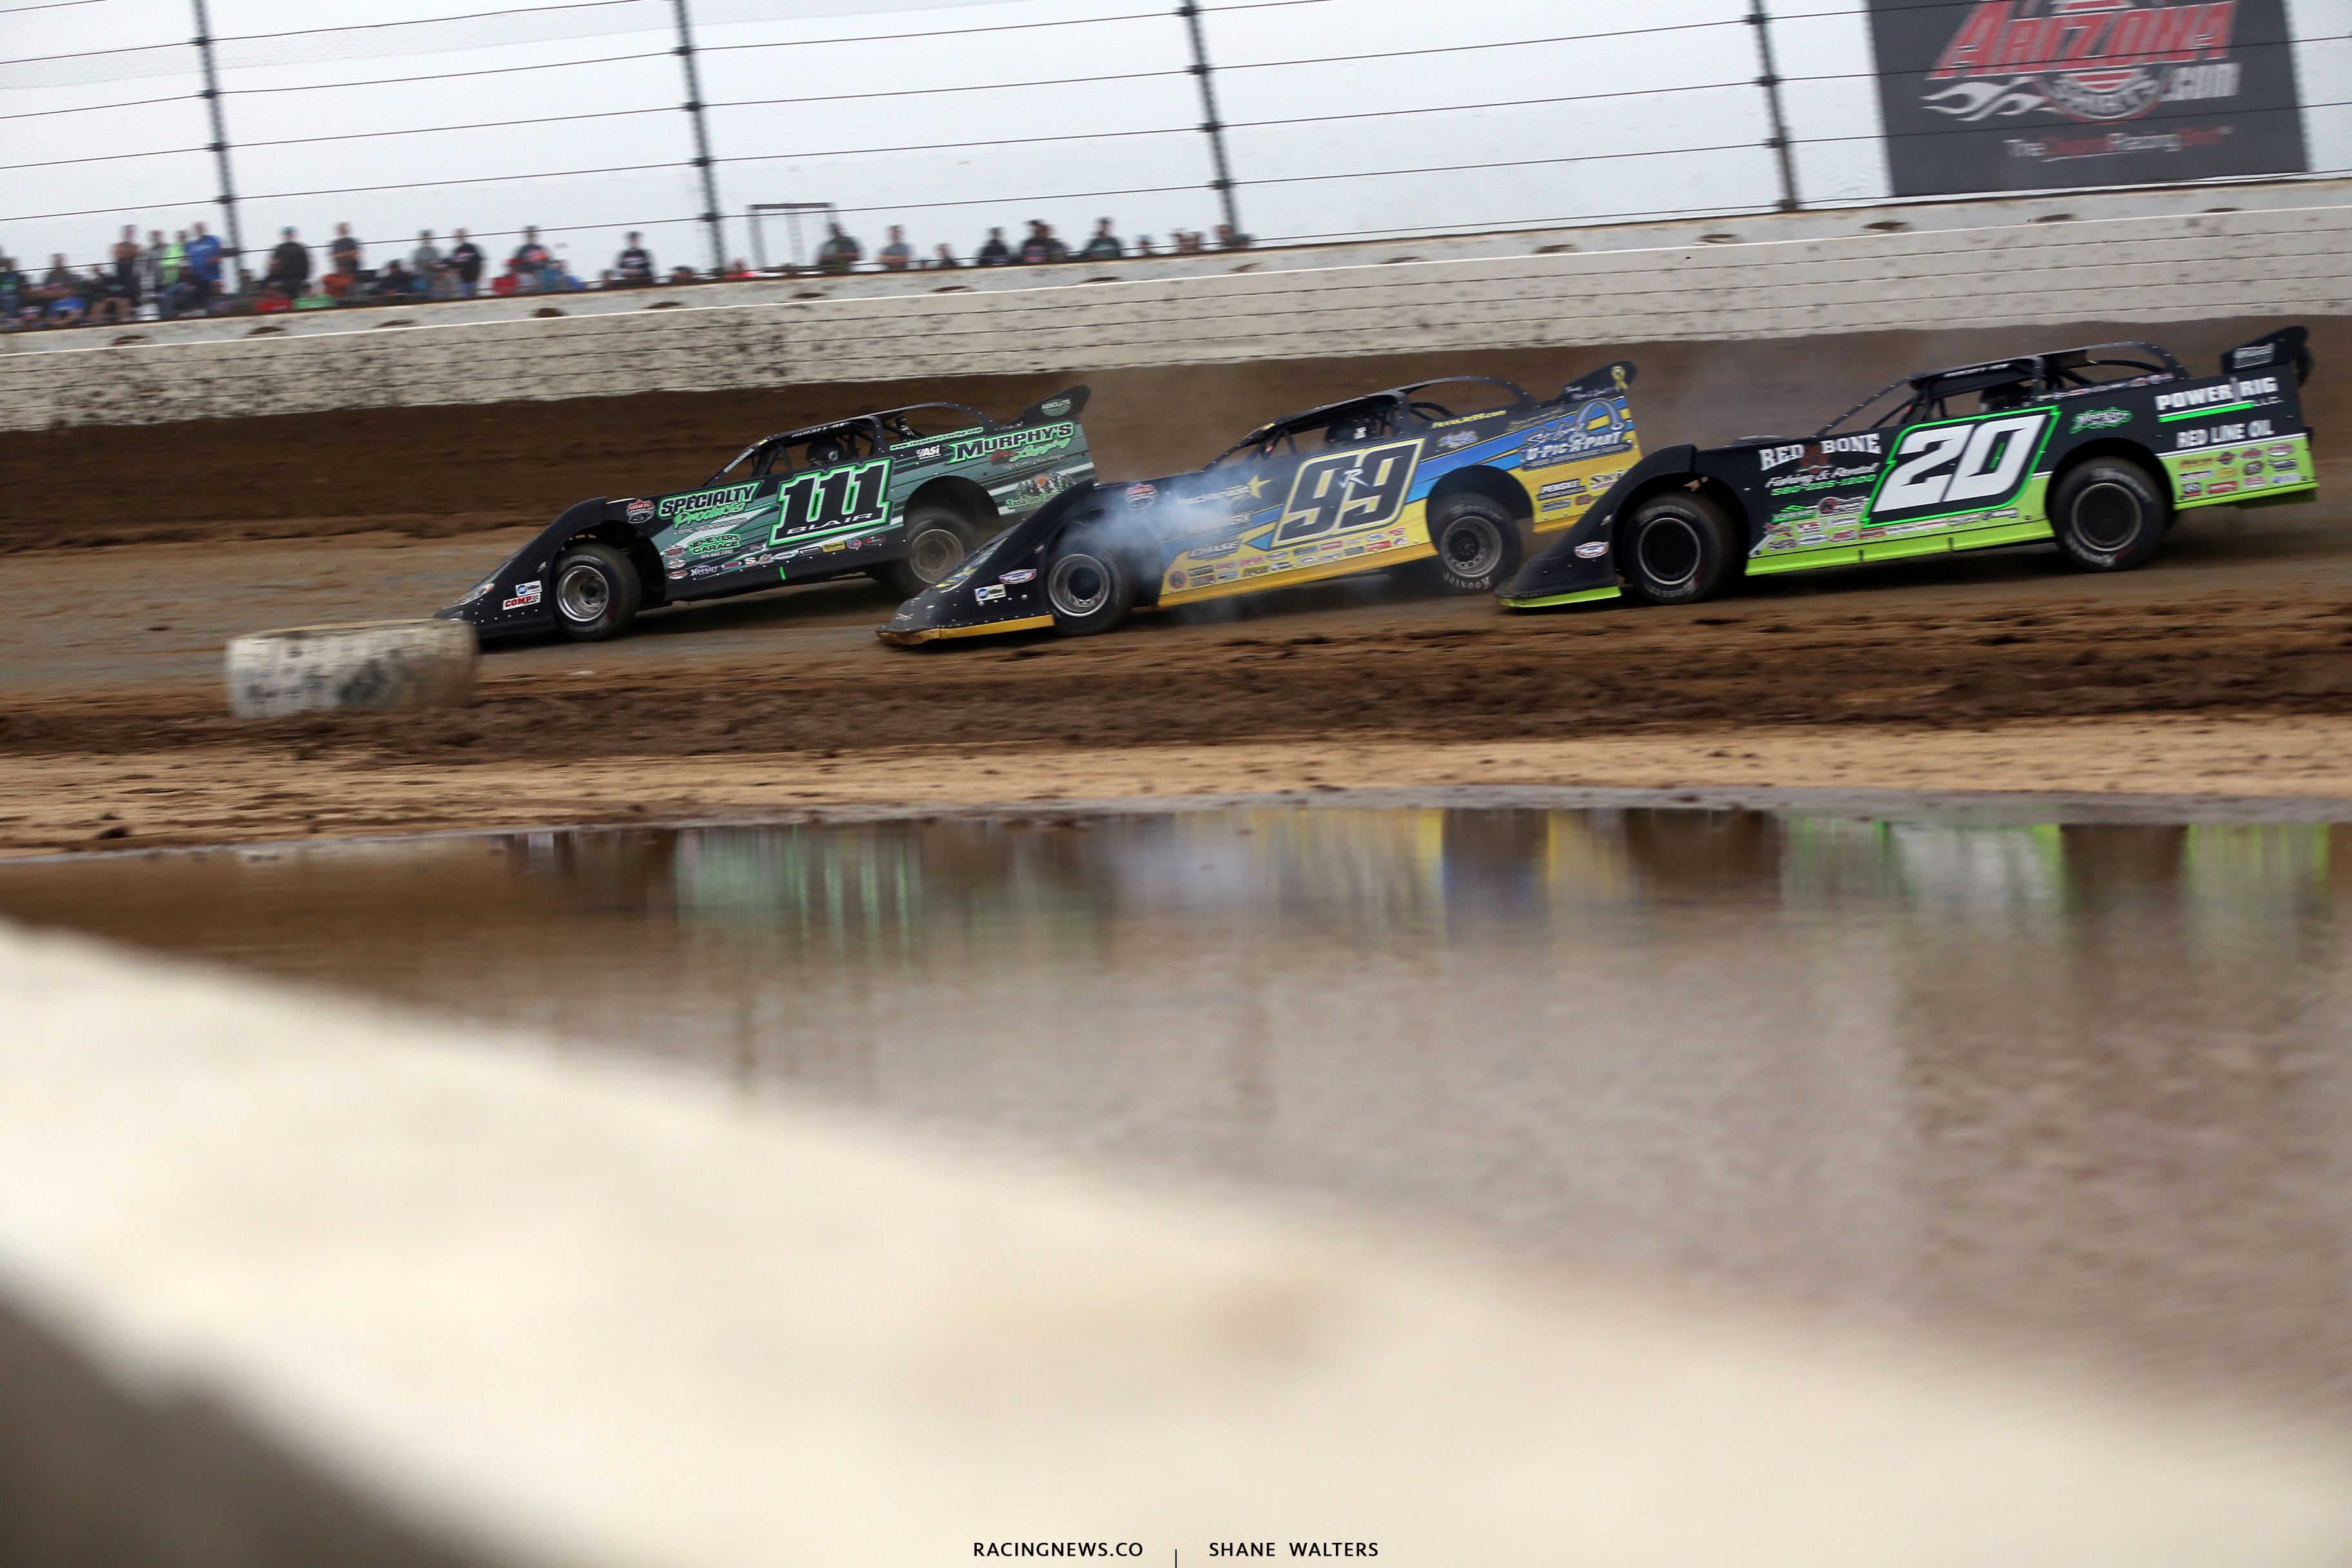 Max Blair, Frank Heckenast Jr and Jimmy Owens in the Dirt Million 6396